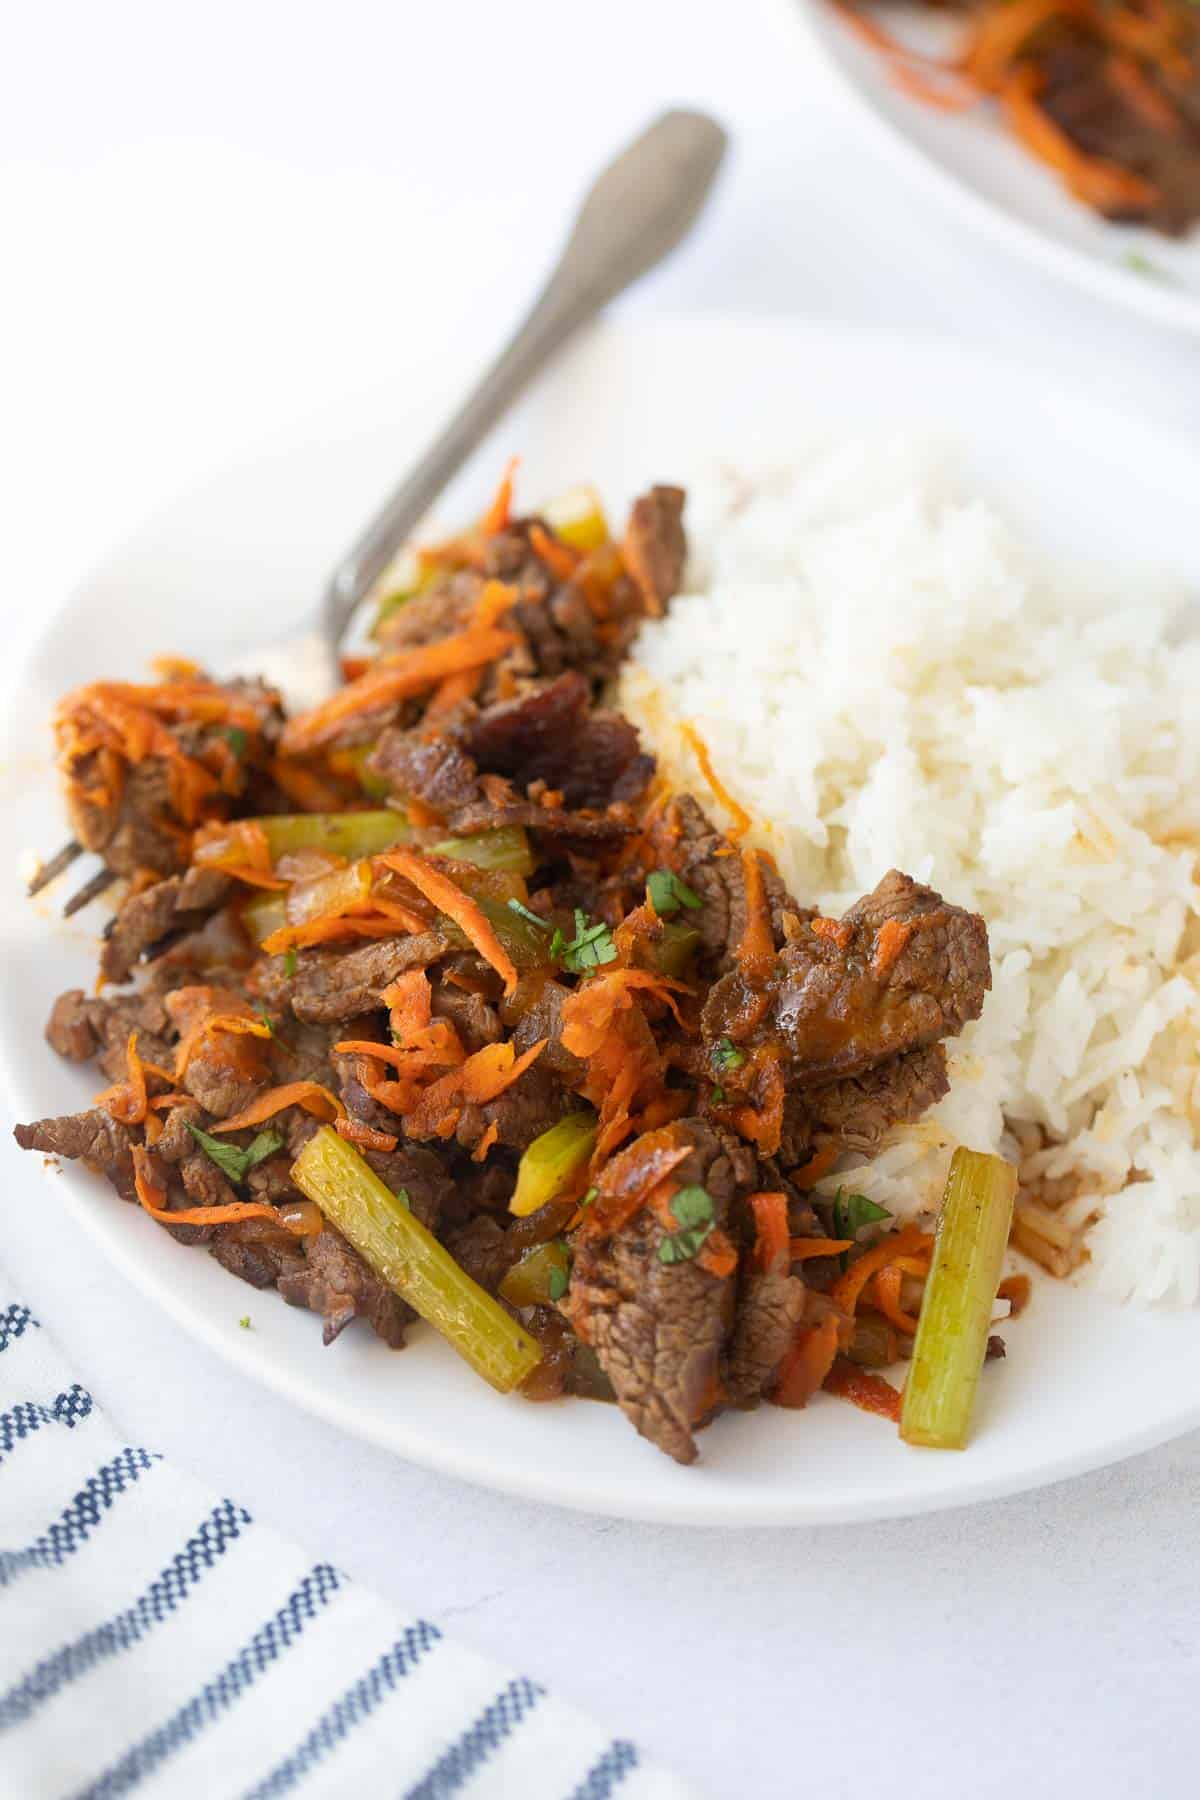 beef stir fry on a plate with white rice